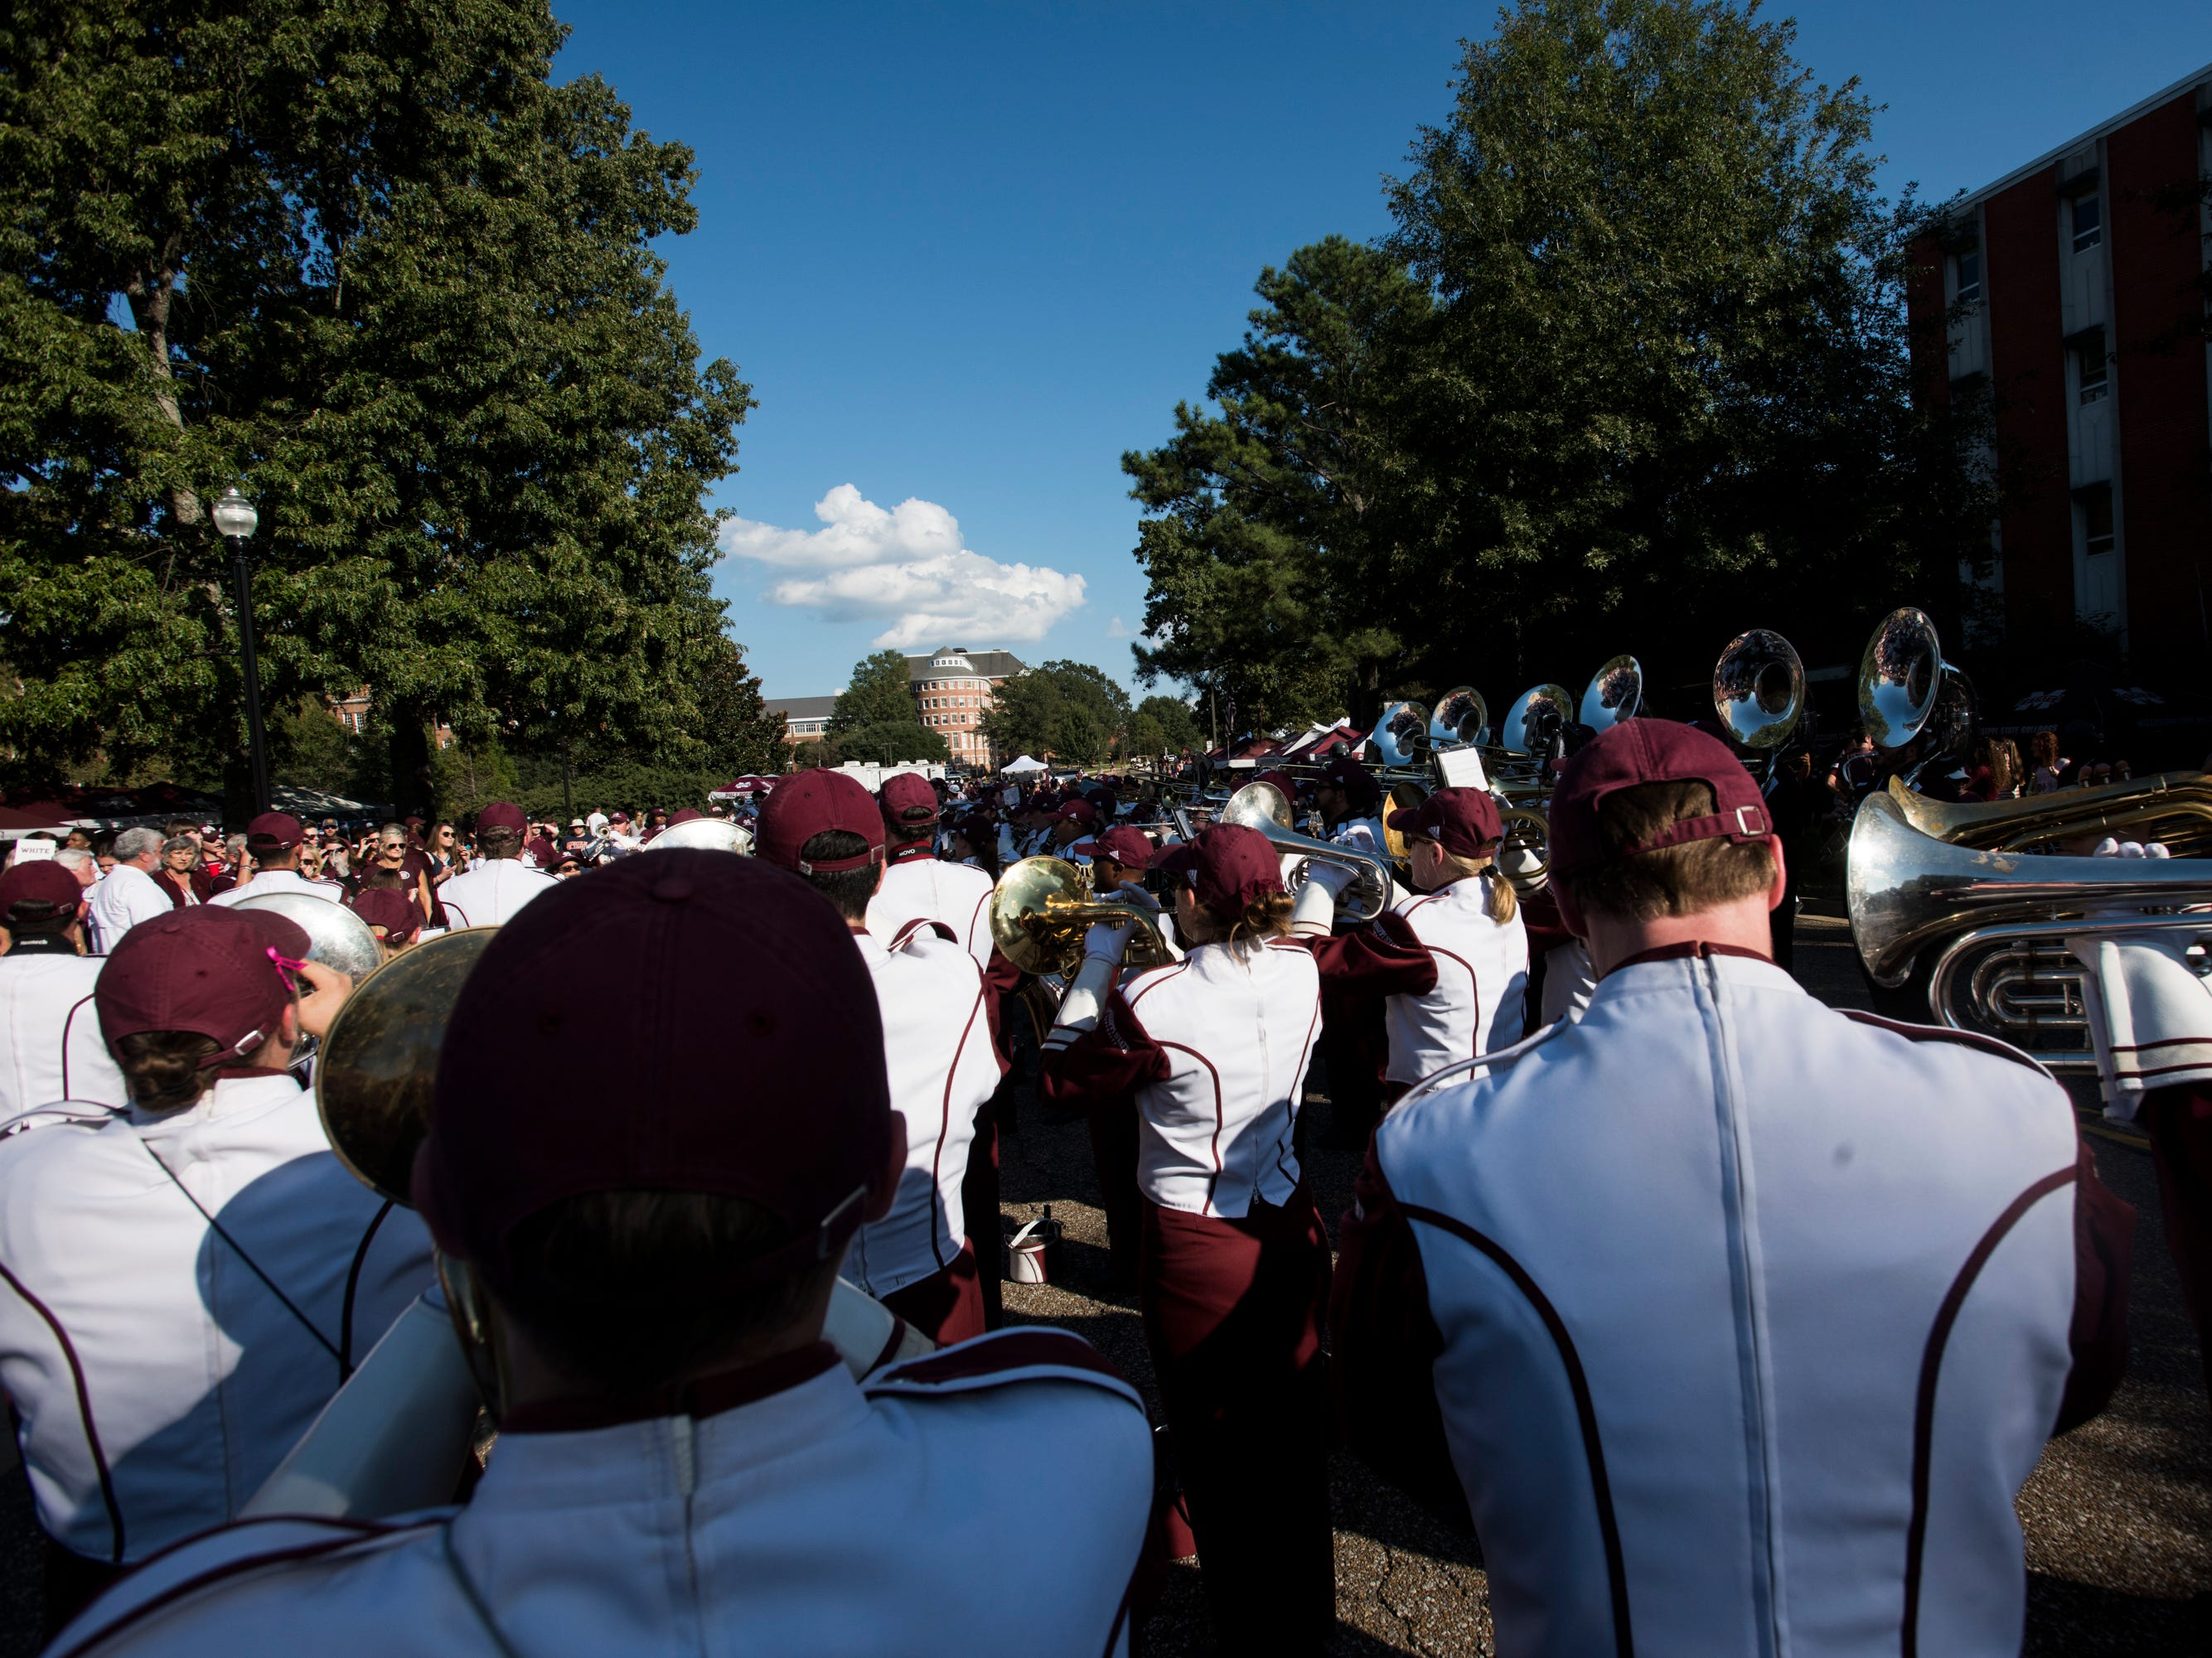 Mississippi State's band warms up before the Dawg Walk outside Davis Wade Stadium in Starkville, Miss., on Saturday, Oct. 6, 2018.